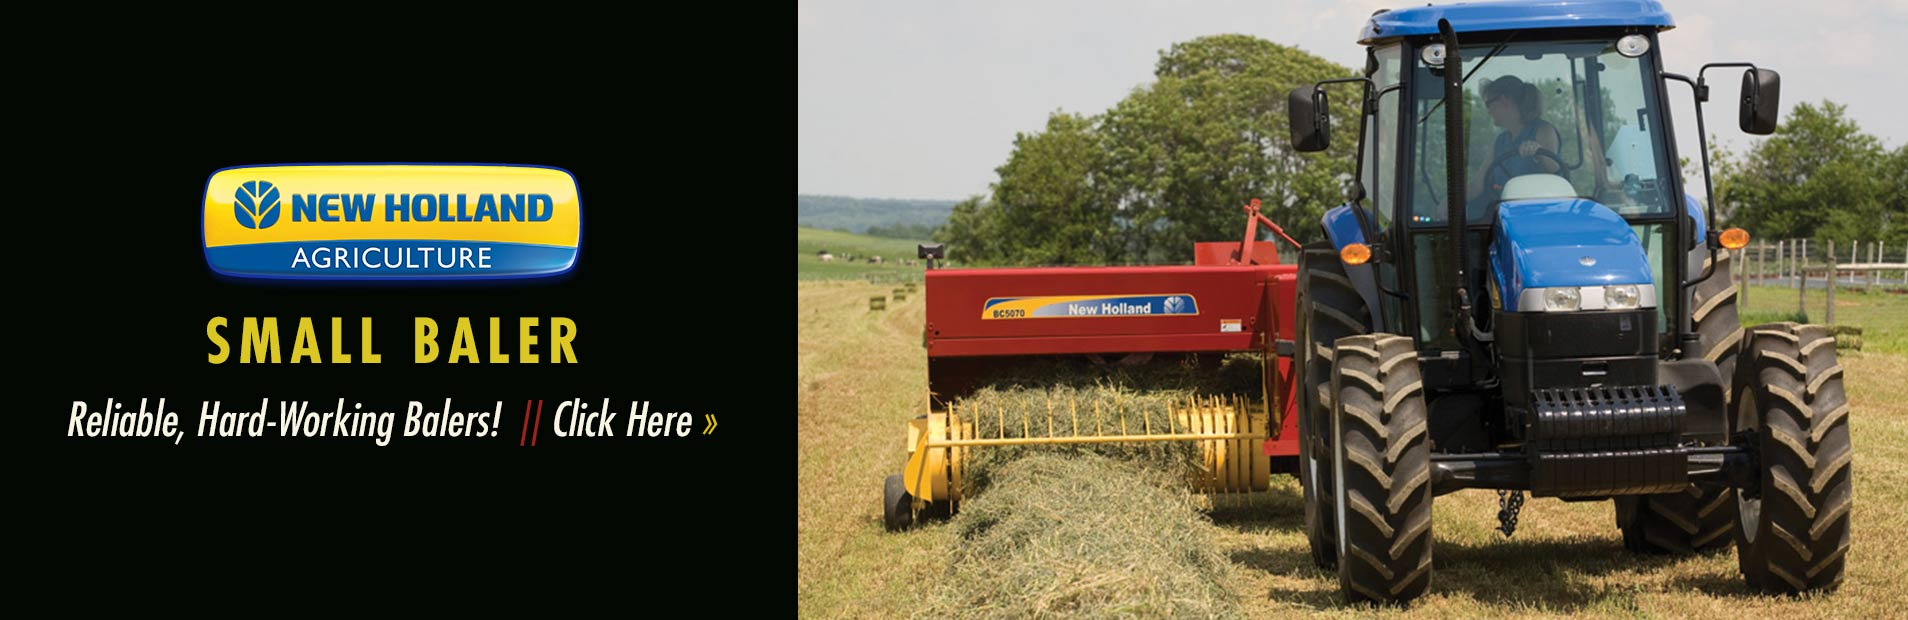 New Holland small balers are reliable and hardworking! Click here to view our selection.